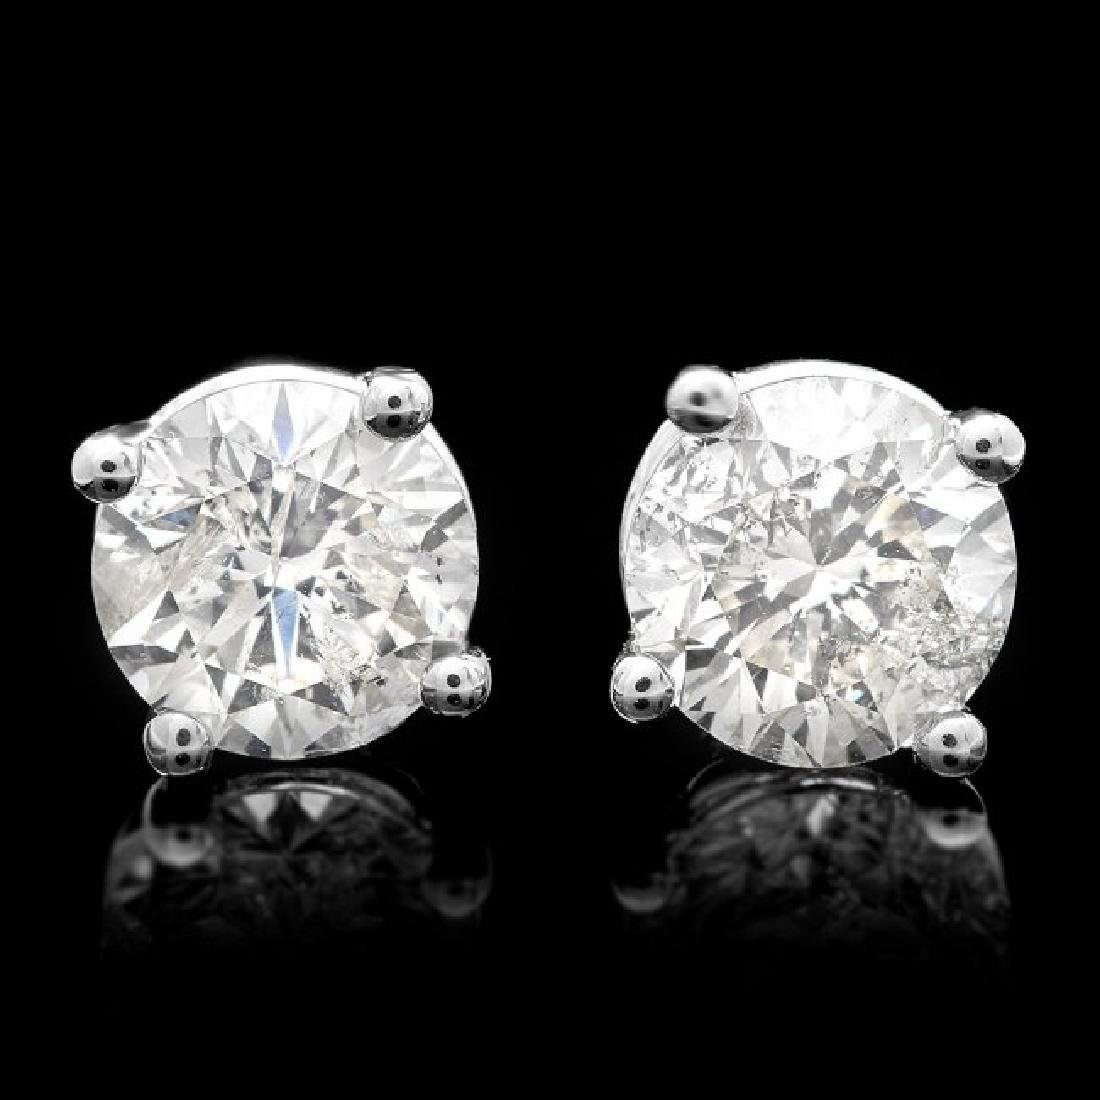 14k White Gold 1.70ct Diamond Earrings